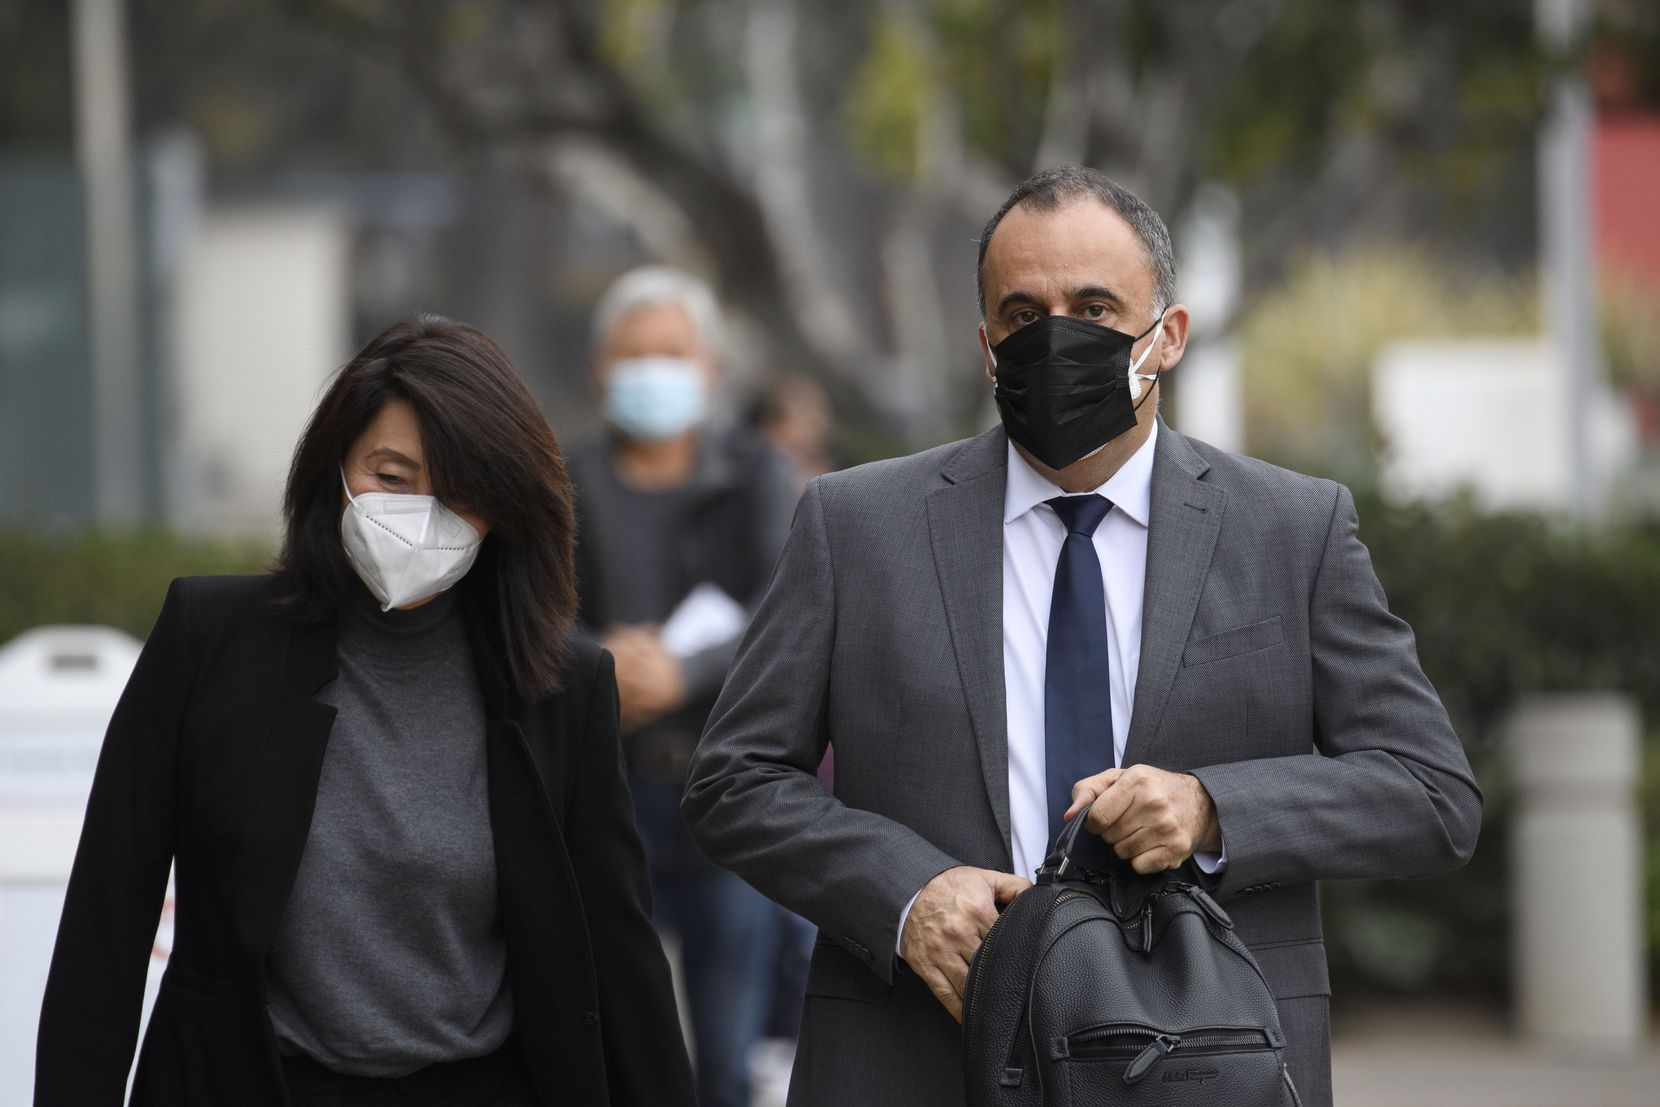 Mark Towfiq and his wife Carol Nakahara arrive for a court hearing in Santa Ana, Calif., on Dec. 7. Towfiq and Nakahara sued neighbors Bill Gross and Amy Schwartz.